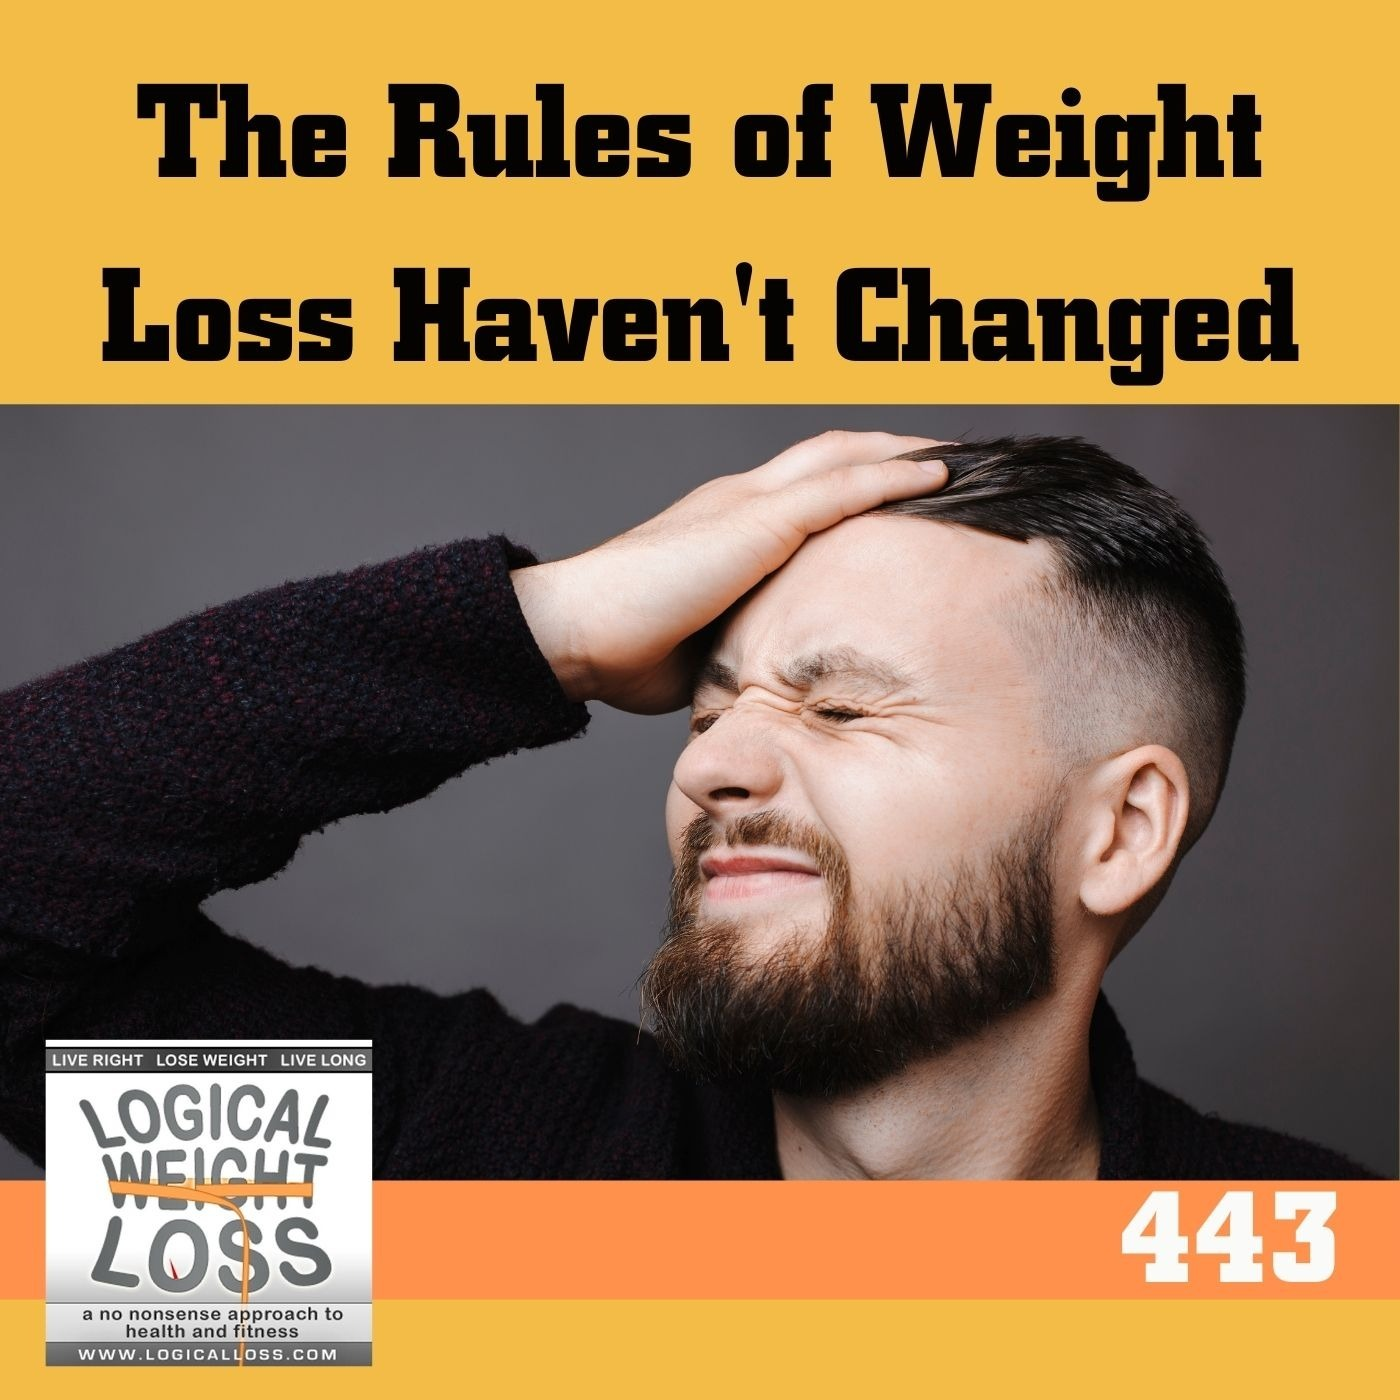 The Rules of Weight Loss Haven't Changed